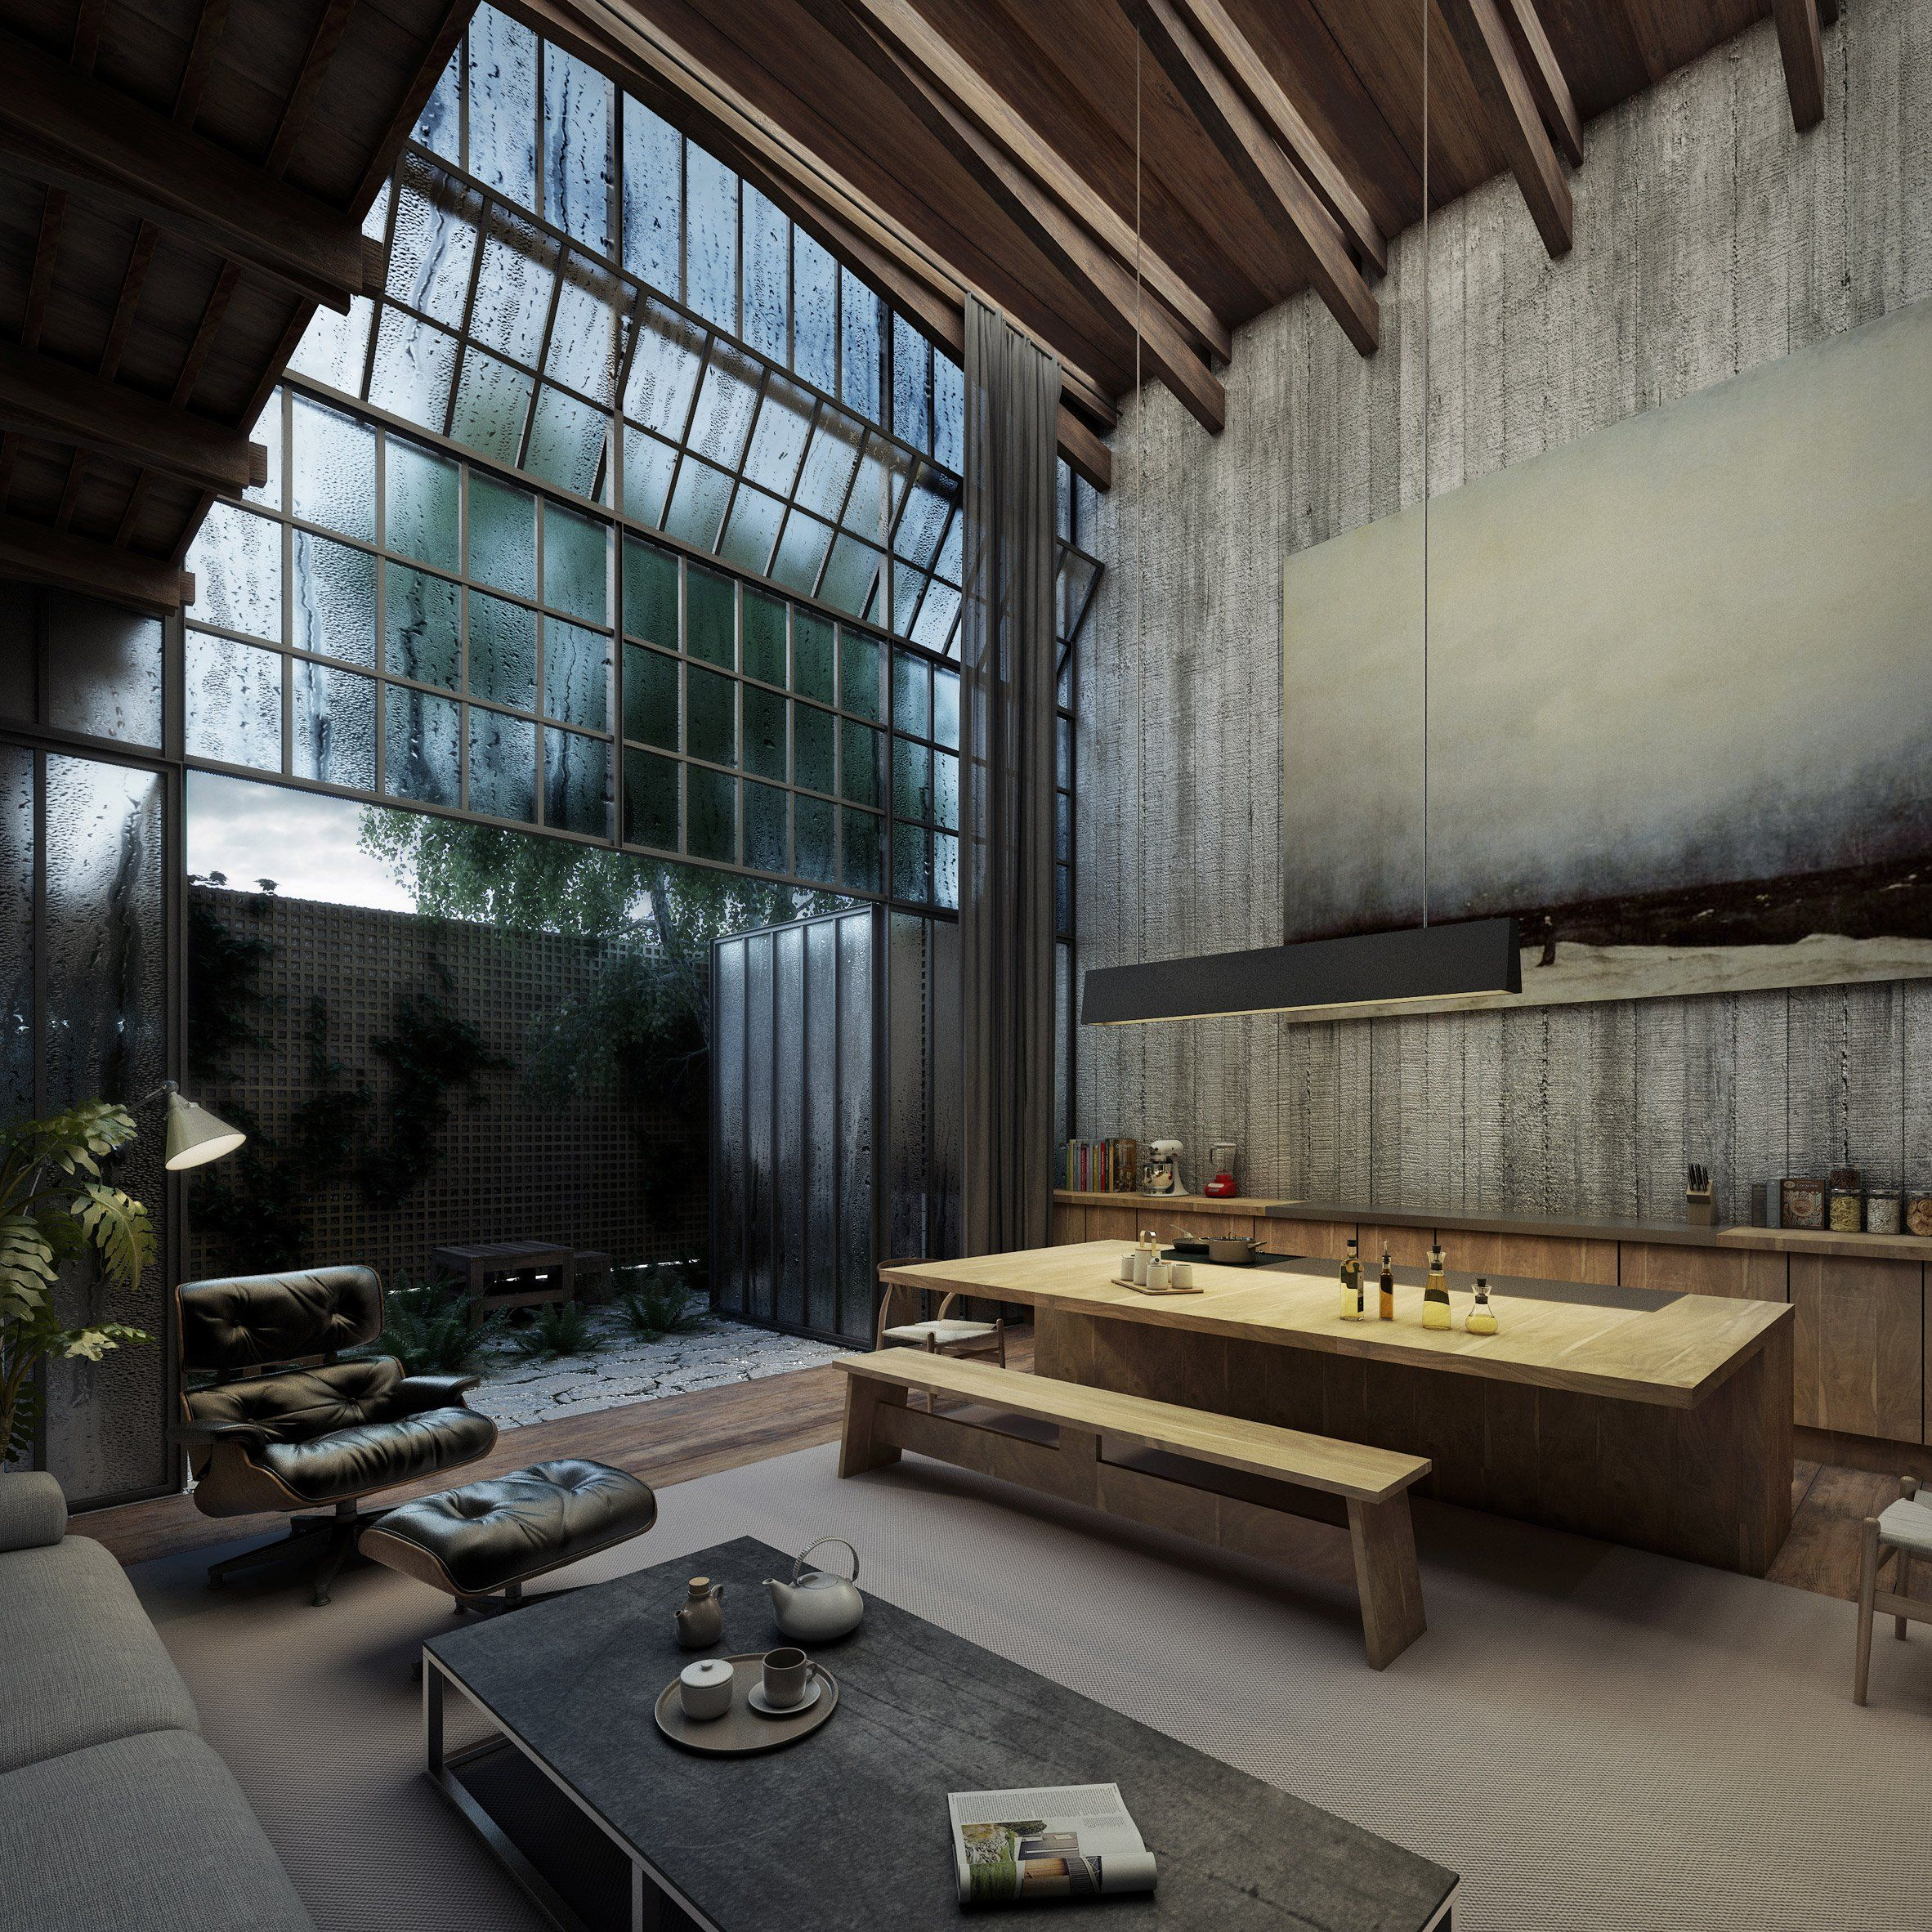 9 Minimalist Living Room Decoration Tips: These Renderings By Visualisation Studio VER Depict A